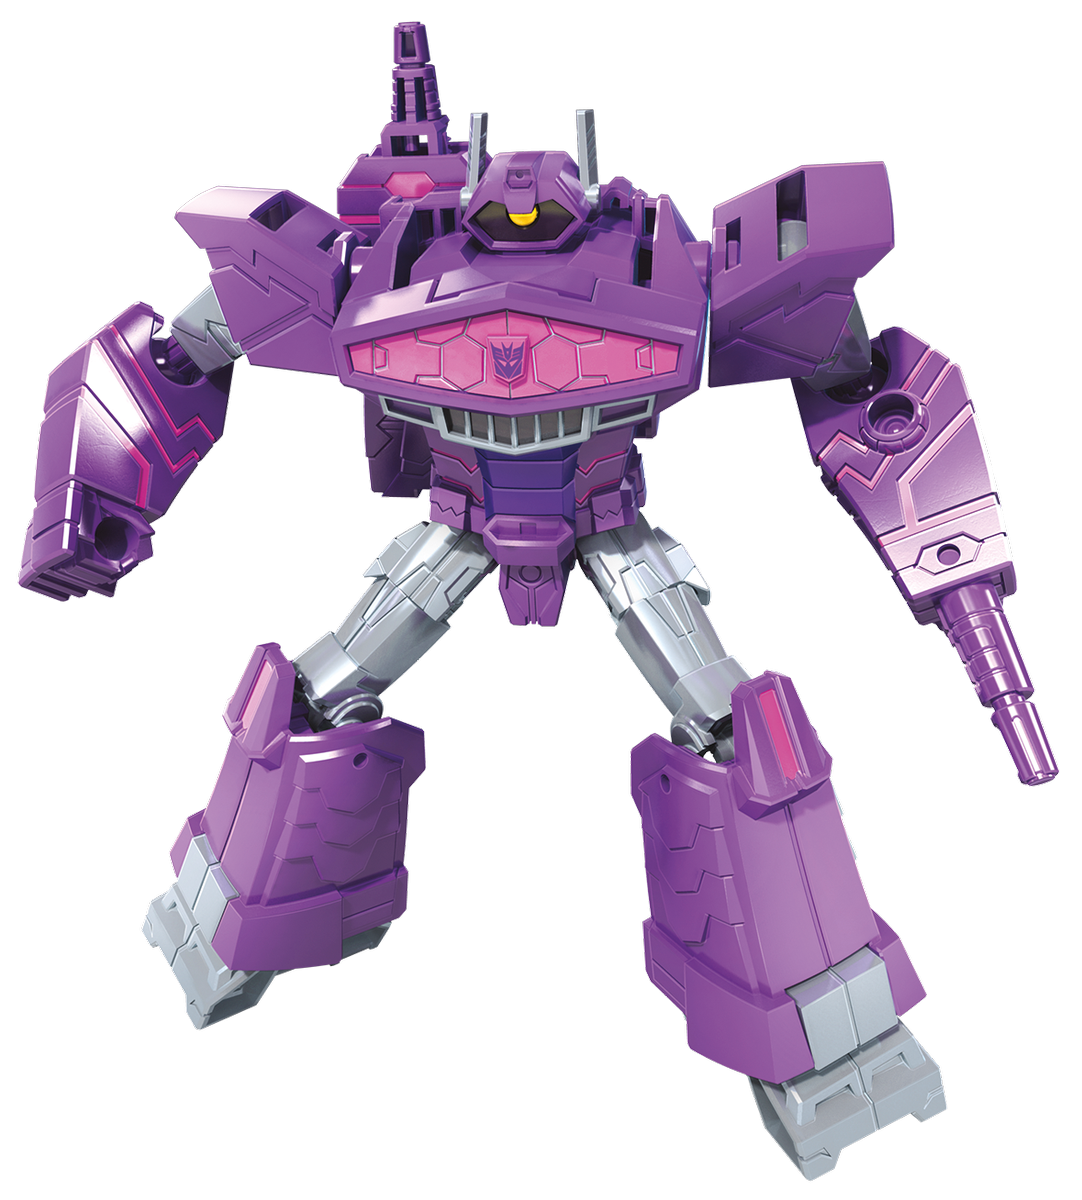 Transformers News: Code for 15% Off Toys and Video Games on eBay Today